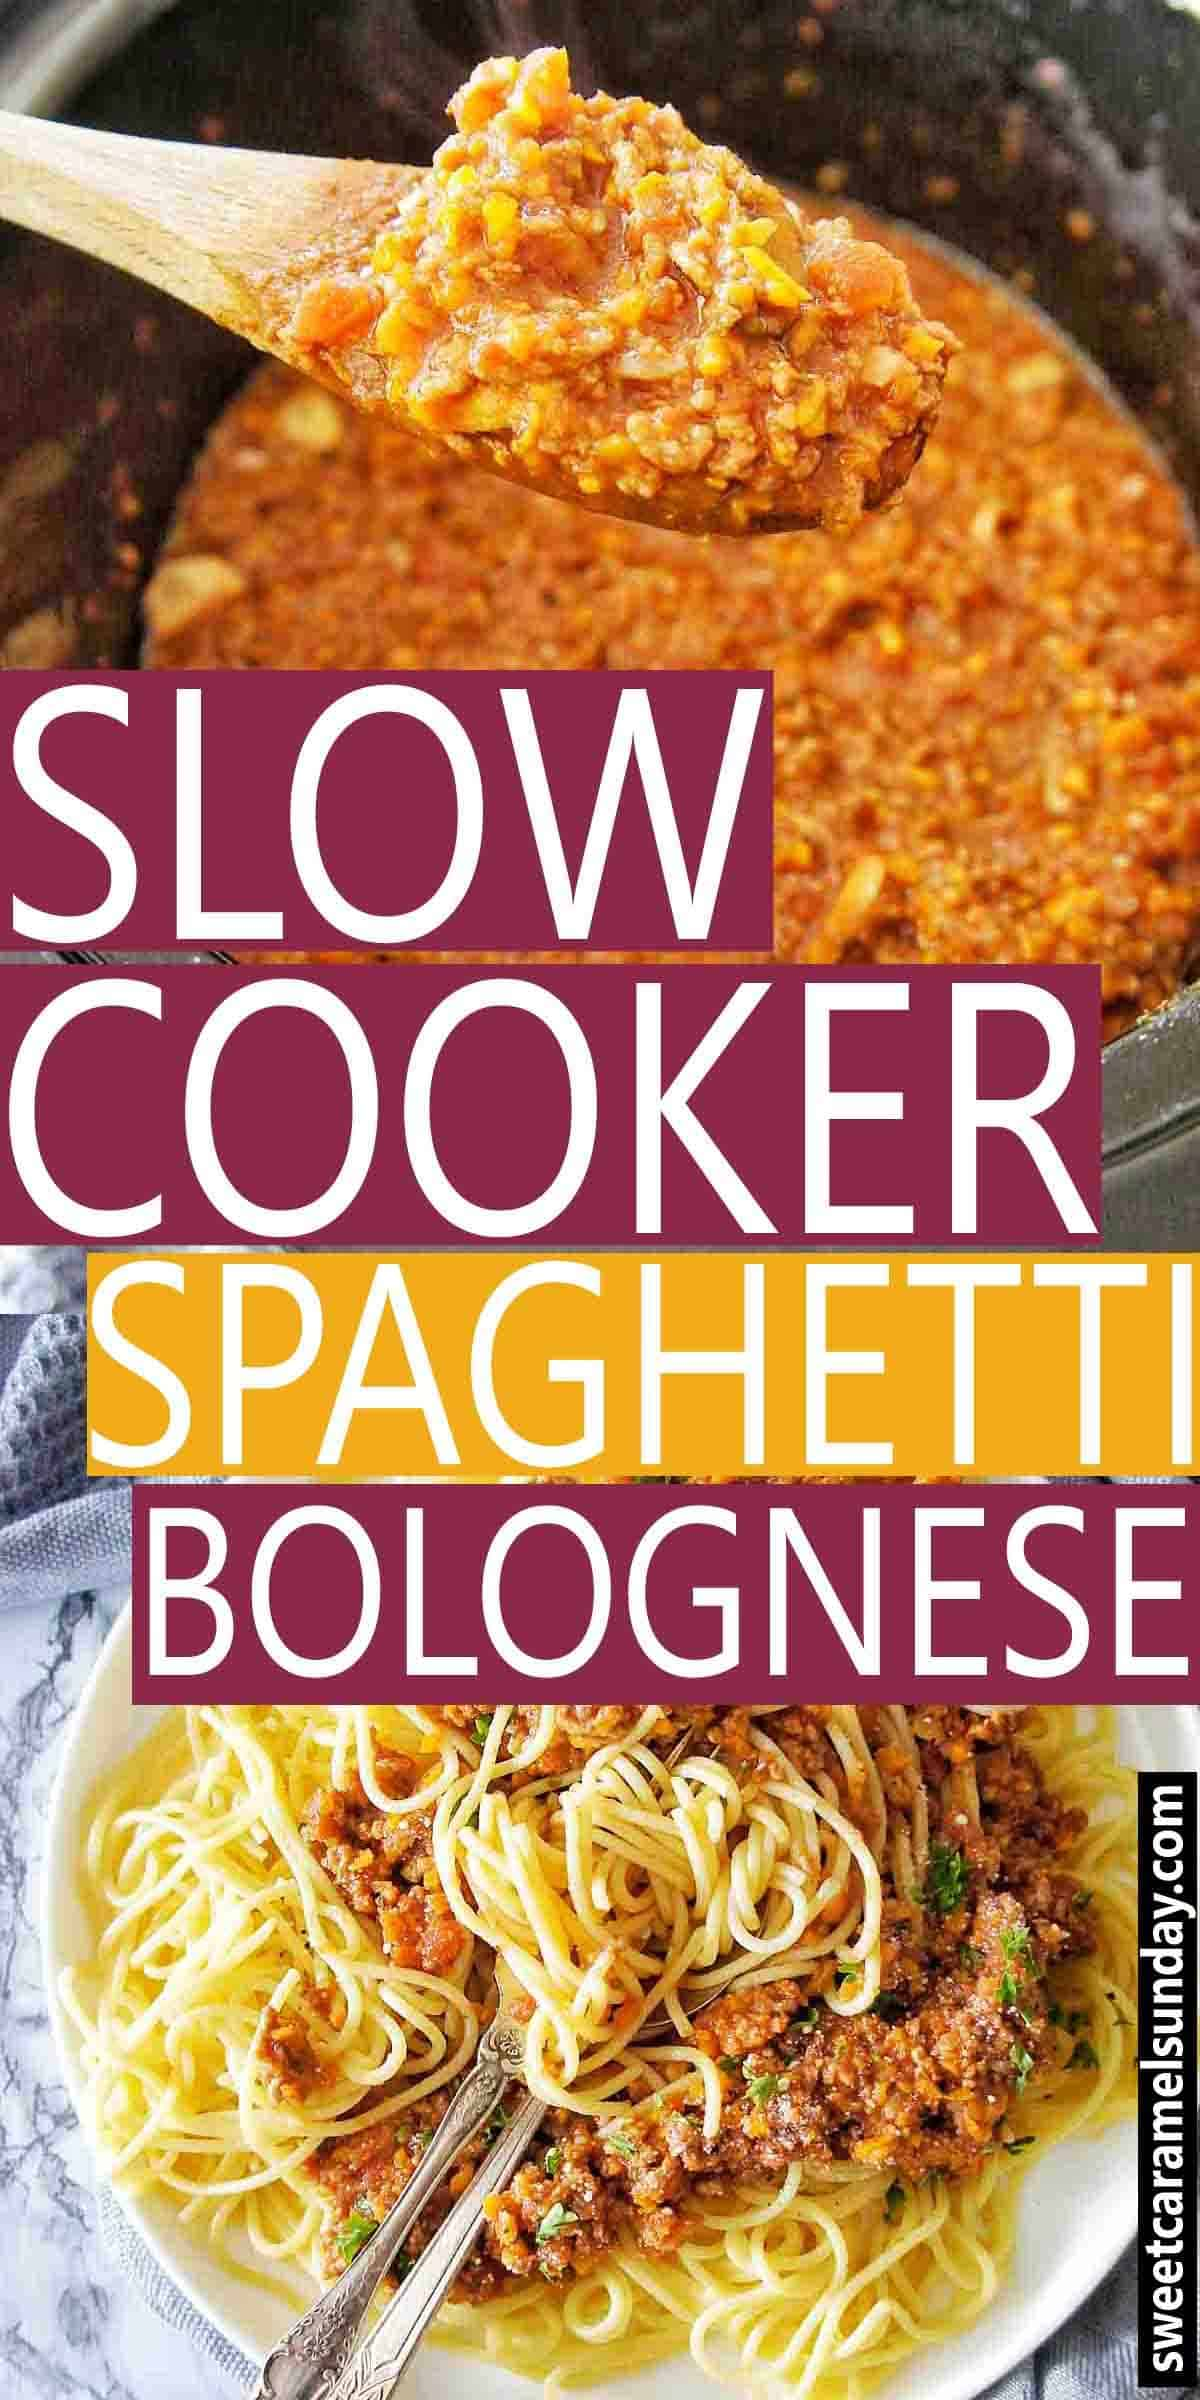 Slow Cooker Spaghetti Bolognese with text overlay